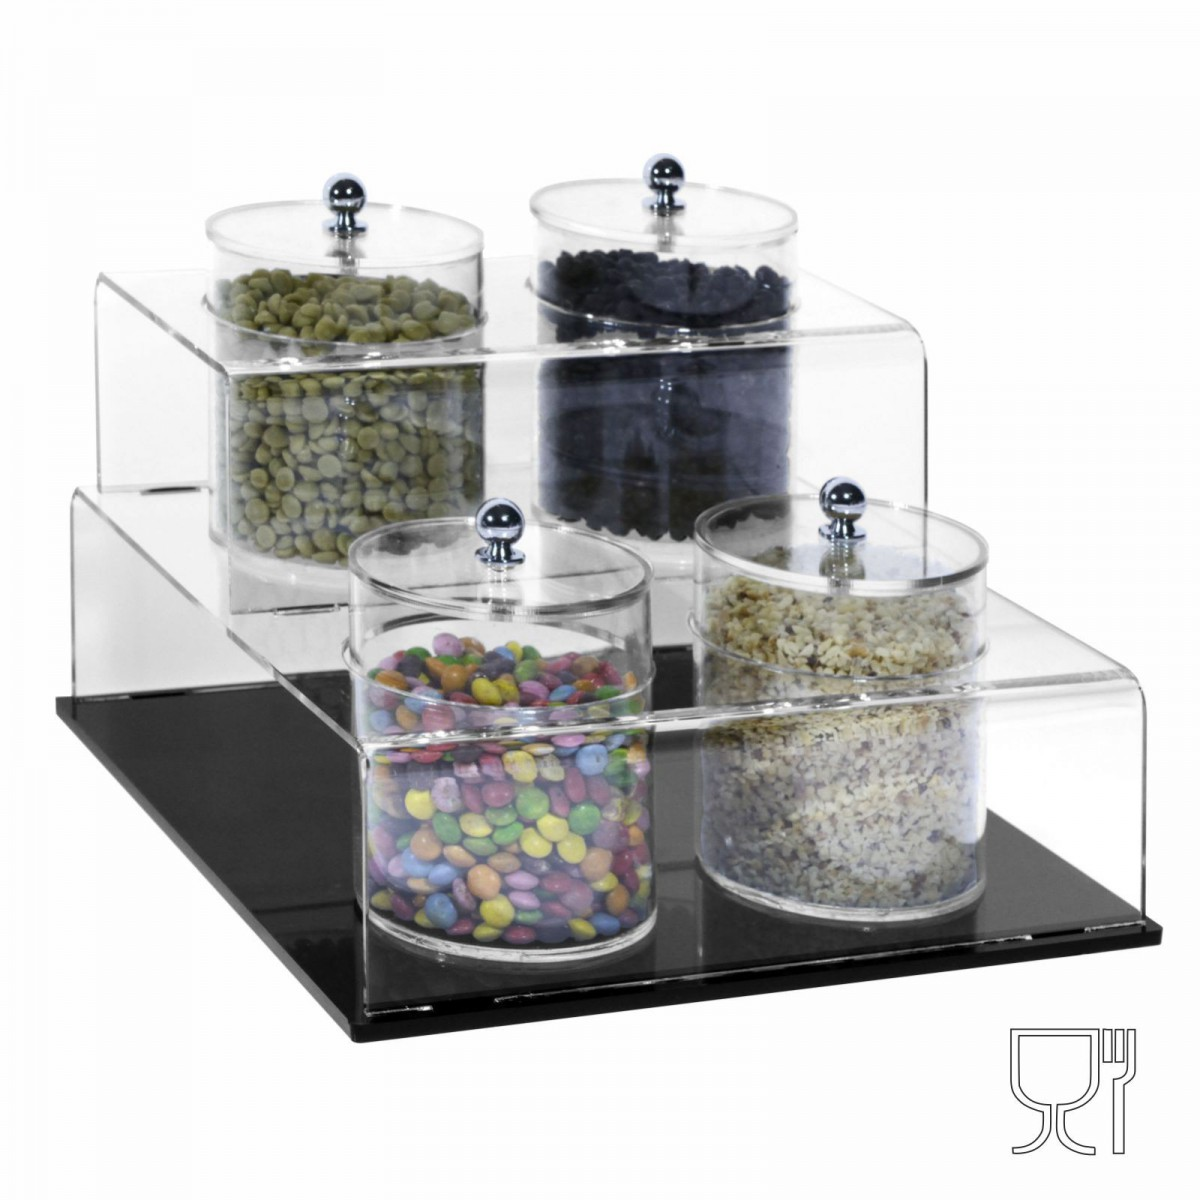 Clear acrylic sprinkle holder with revolving with black base with bins